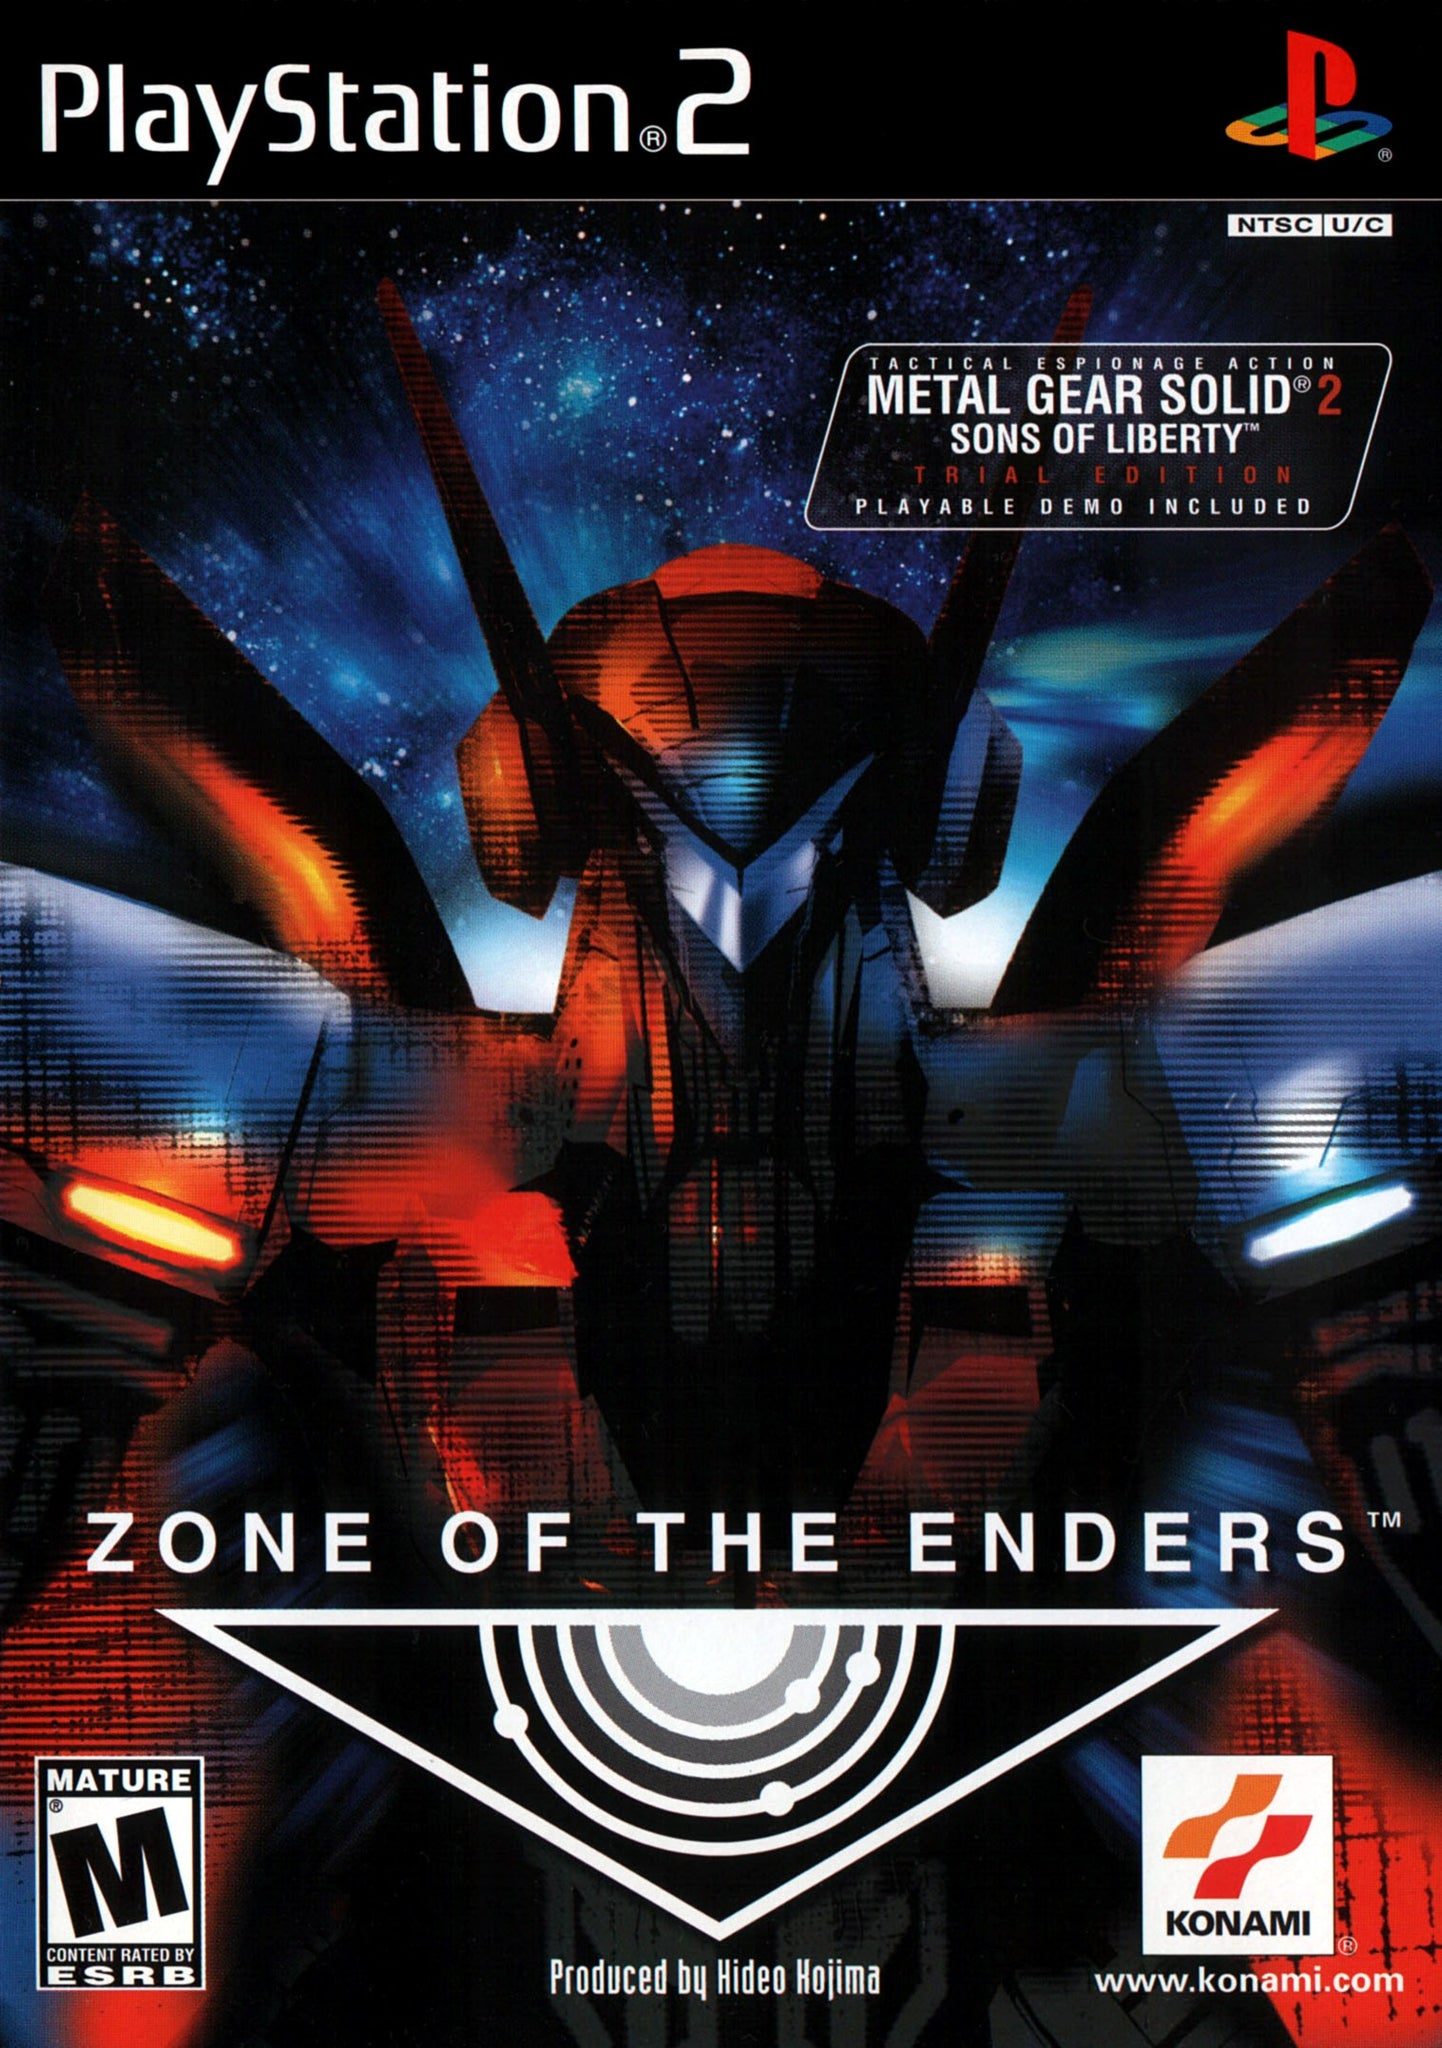 Zone of the Enders - PS2 (Pre-owned)